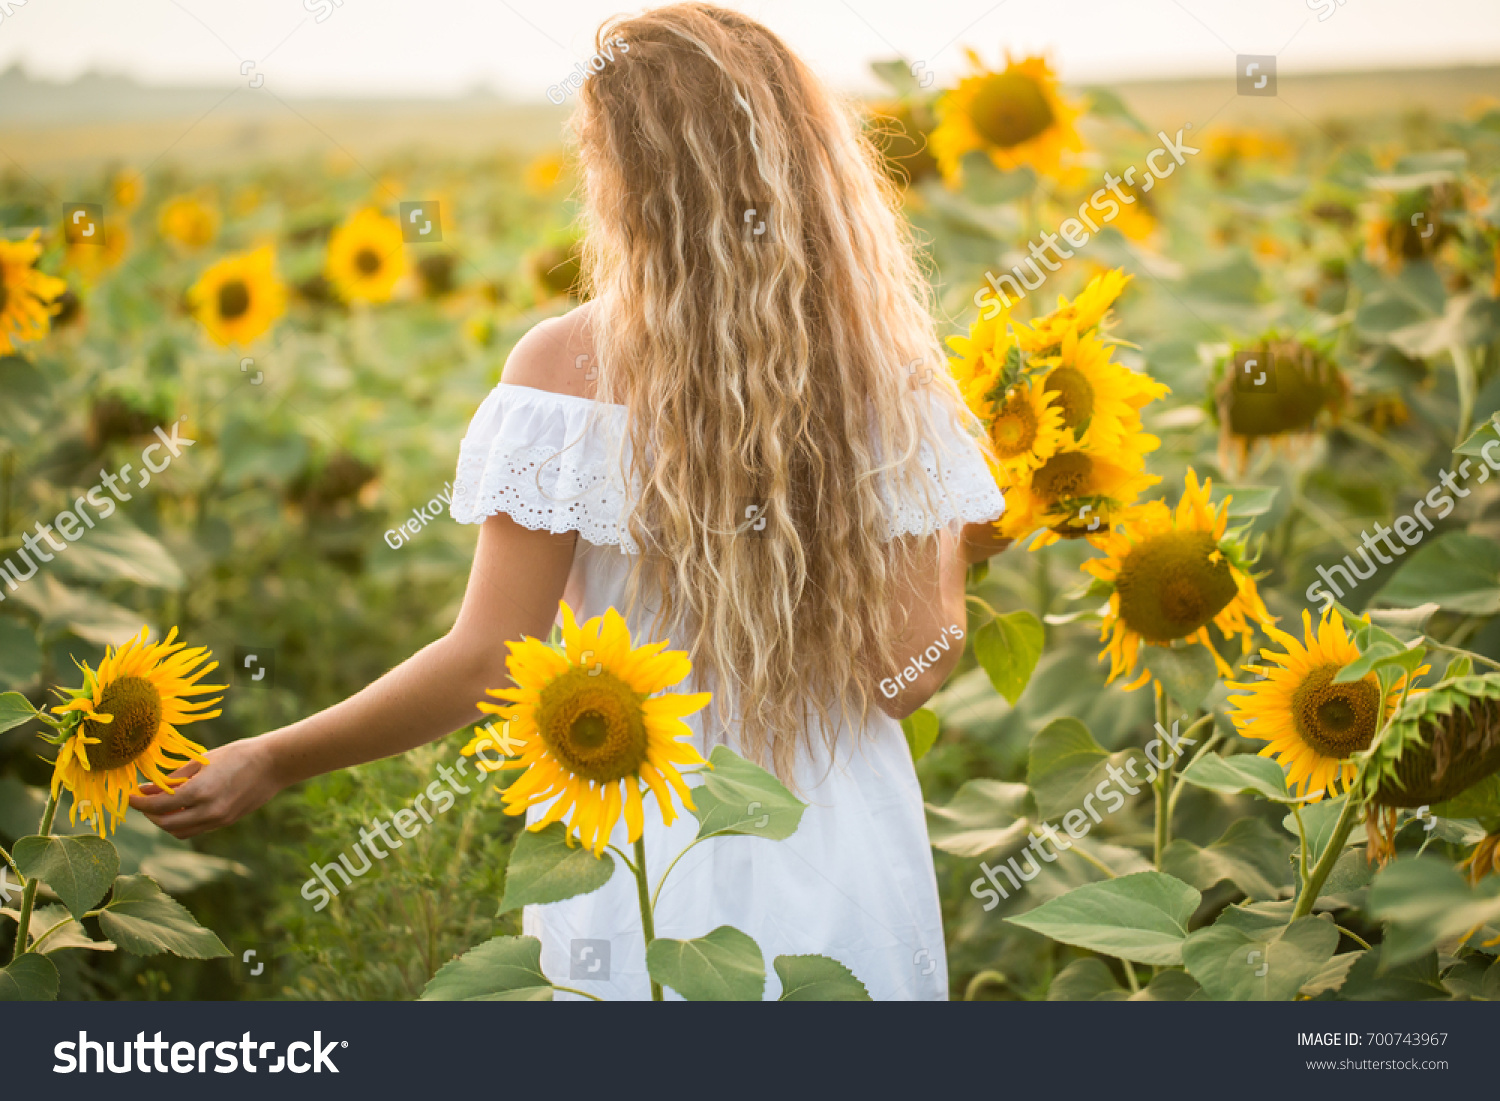 Young Woman In A Field Of Sunflowers Sunset Light The